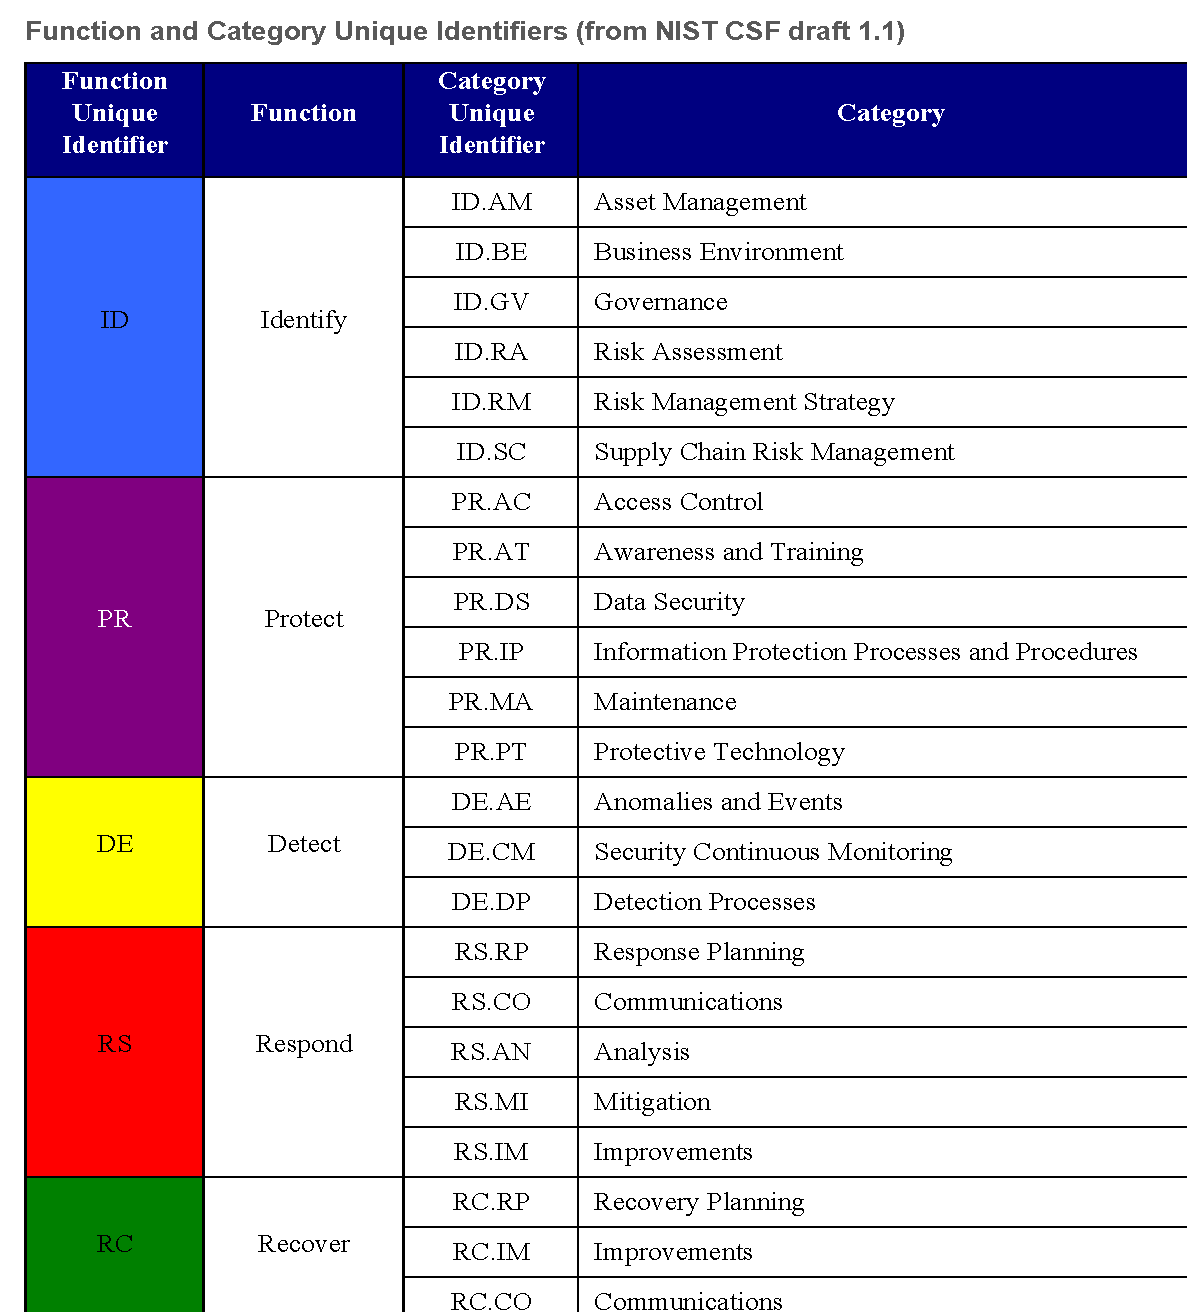 Reproduction of table 2 from NIST CSF draft 1.1